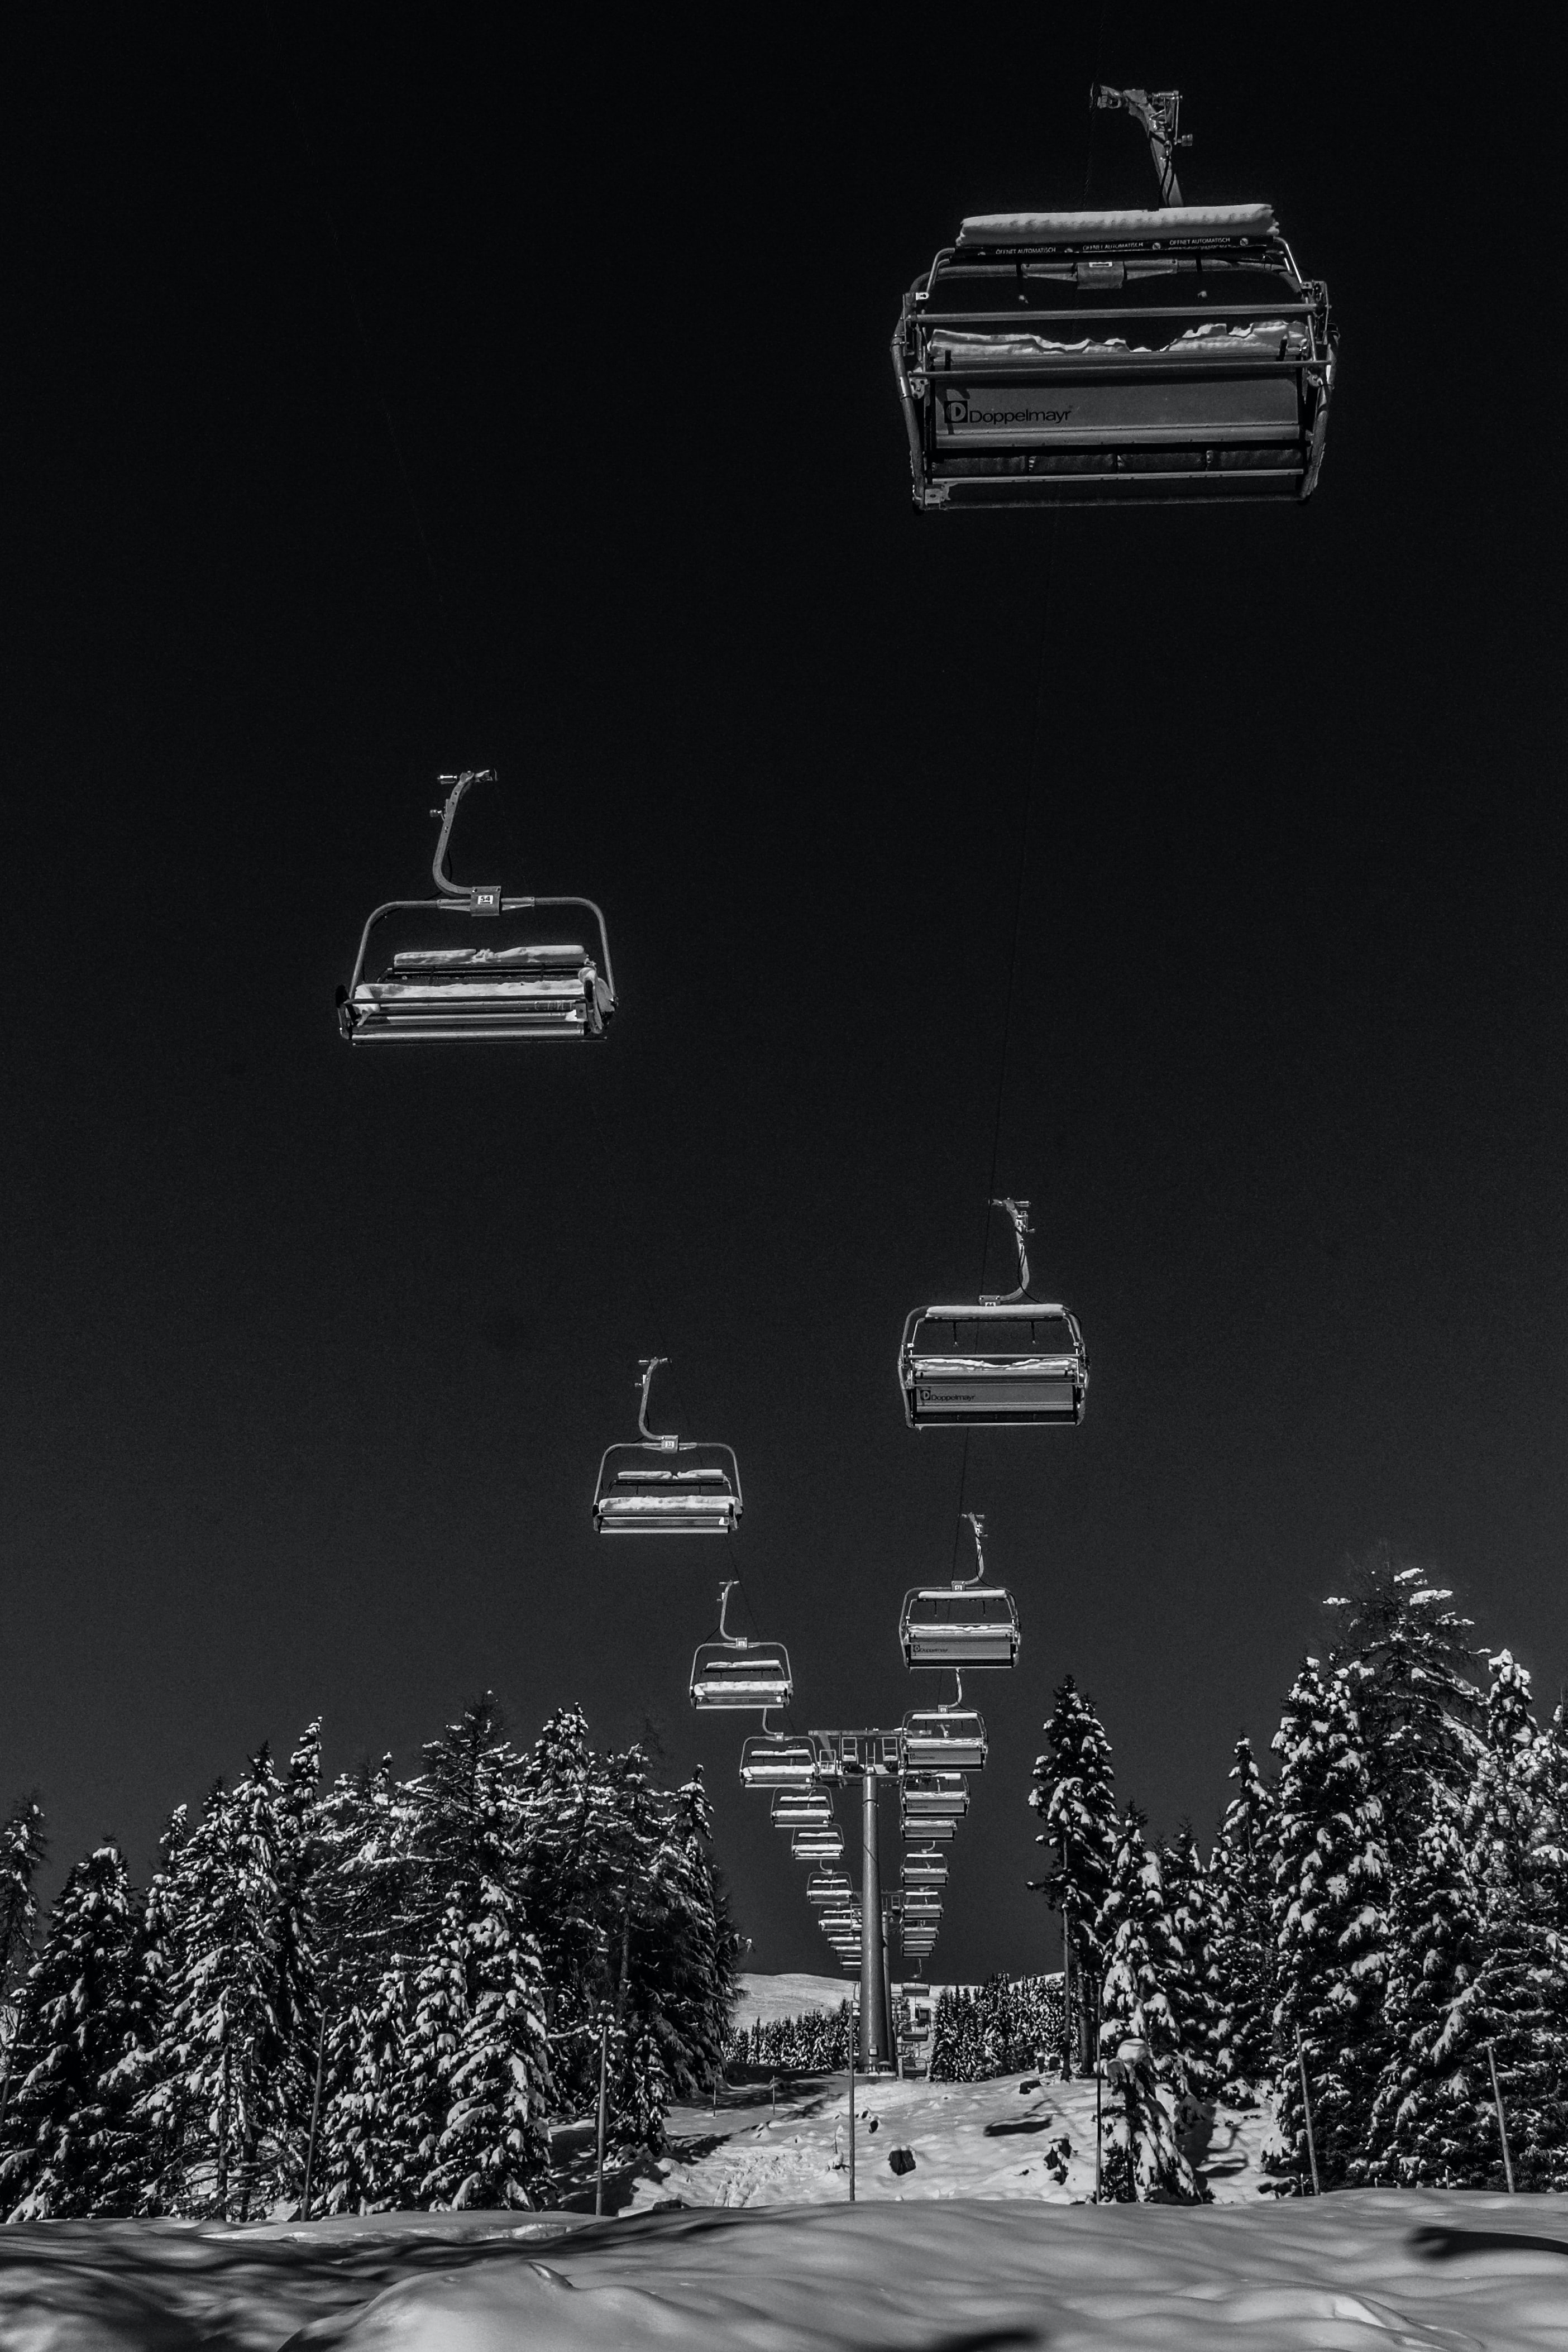 Black and white chairlift going through a snow covered park